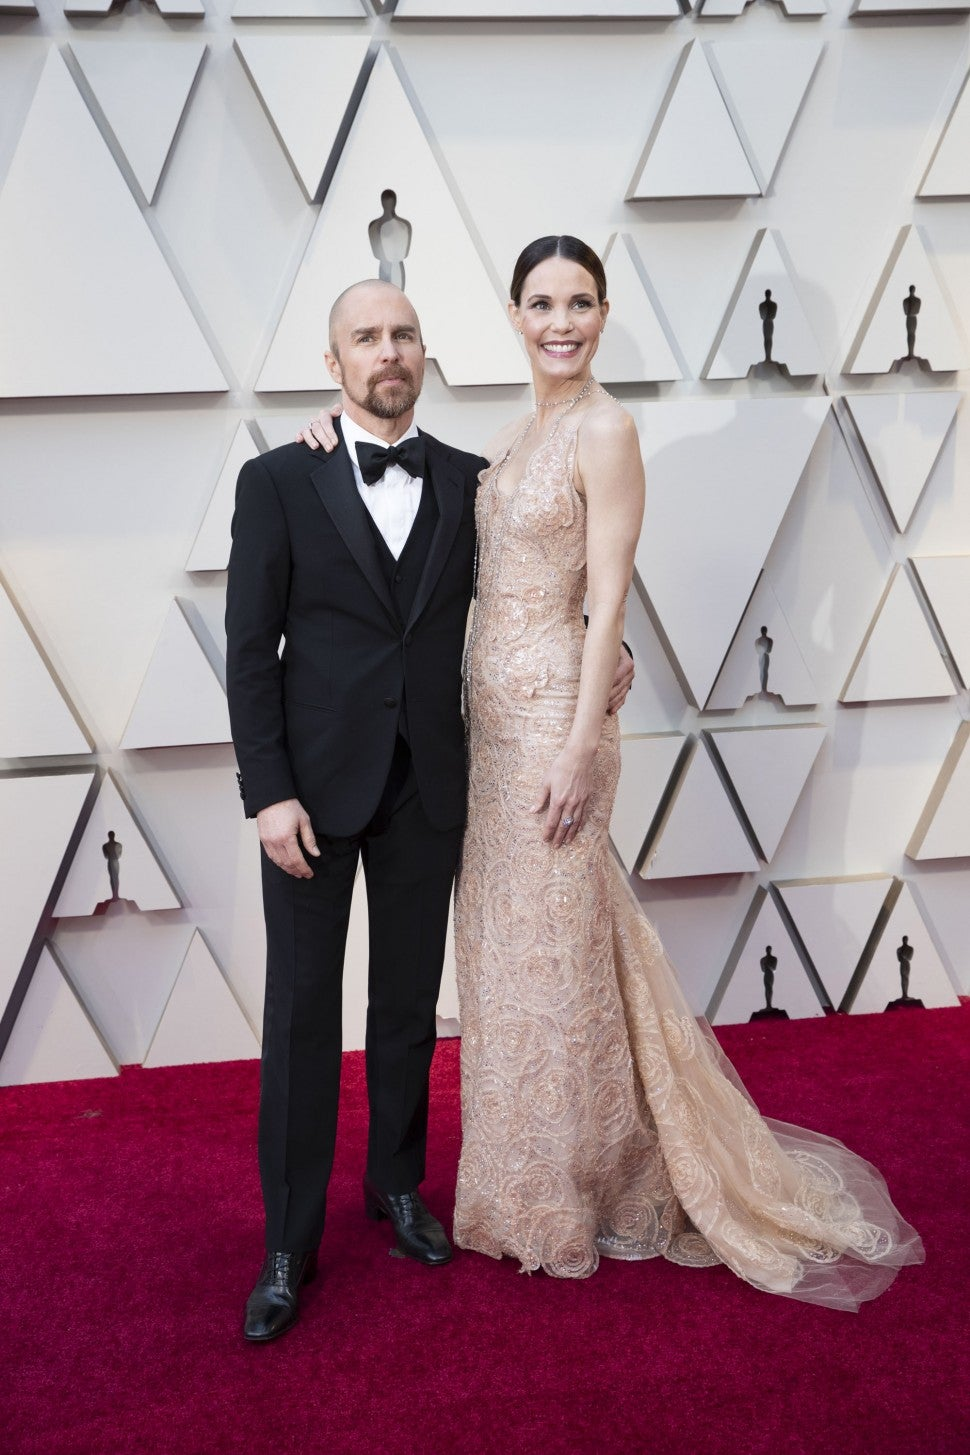 Sam Rockwell and Leslie Bibb at the 2019 Oscars